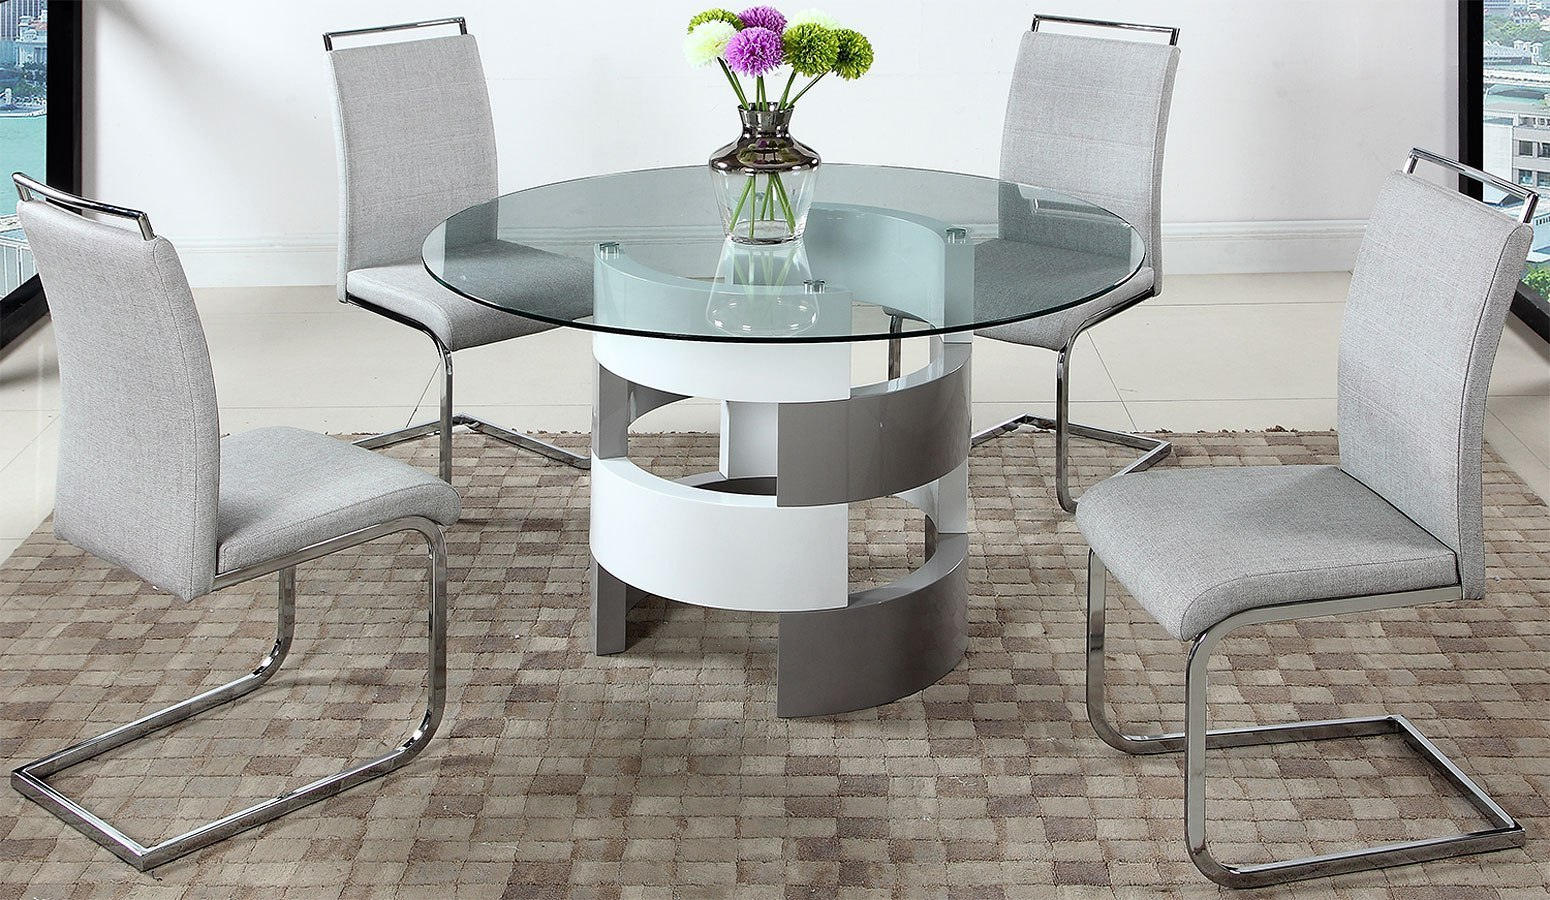 Sunny Round Dining Room Set By Chintaly Imports